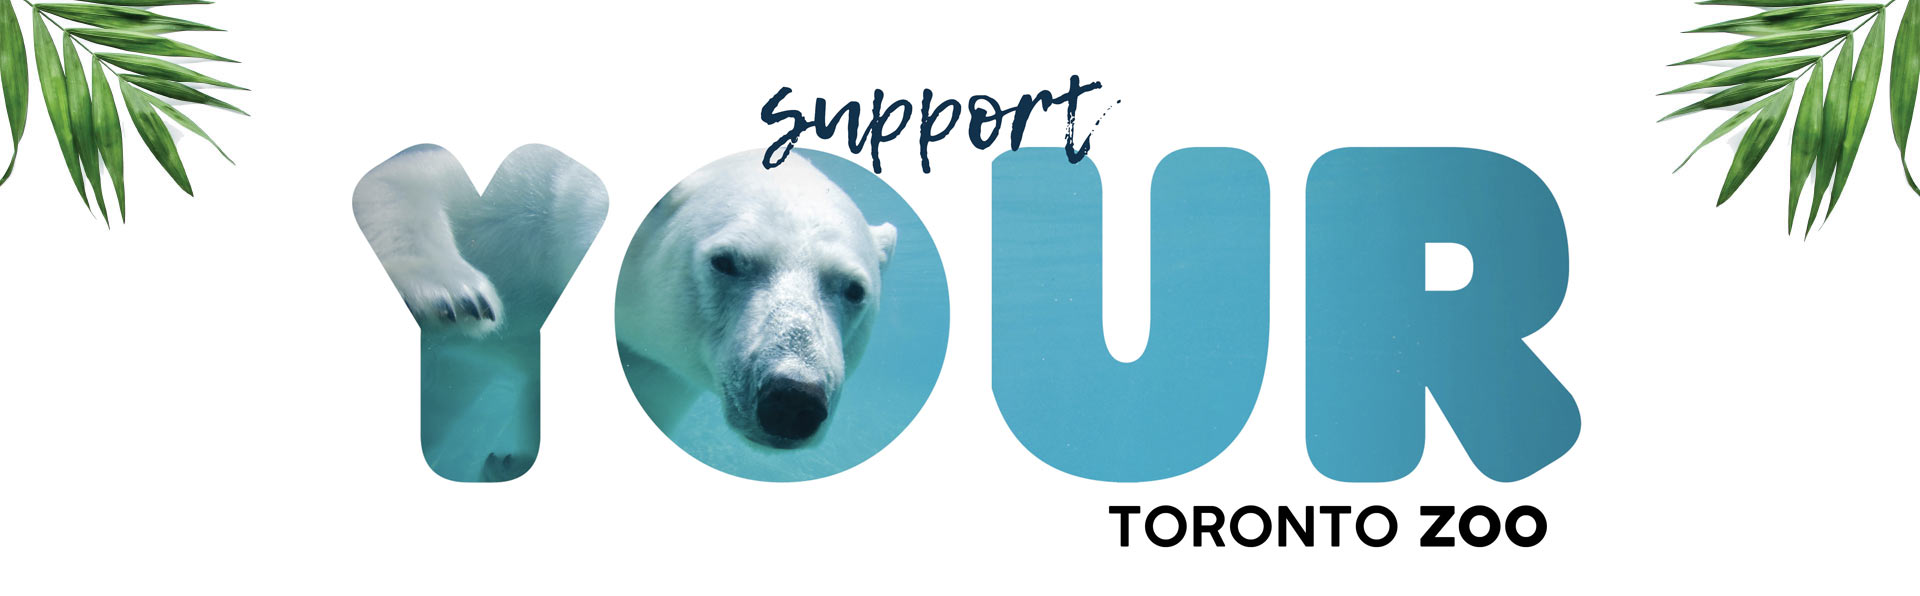 Support Your Toronto Zoo